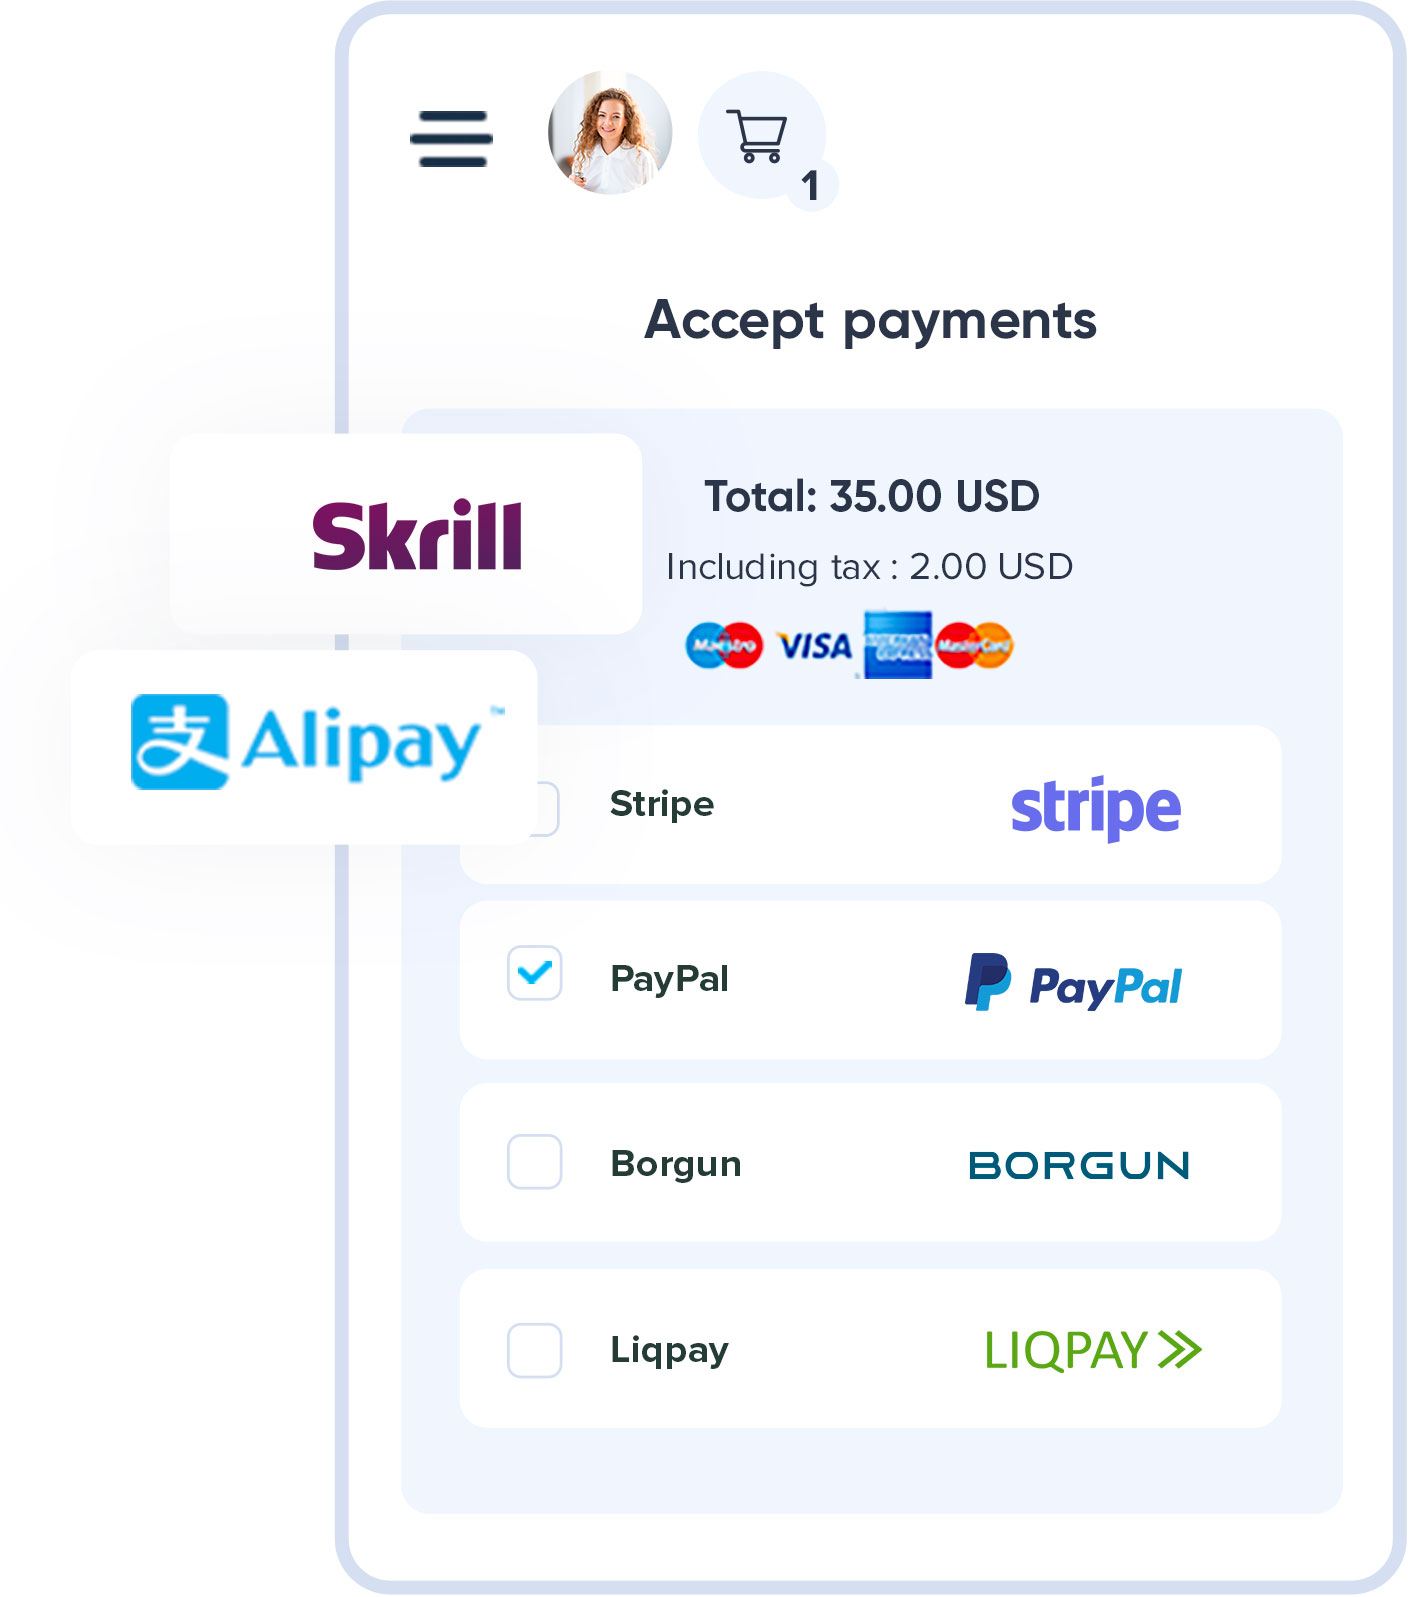 Accept payments image